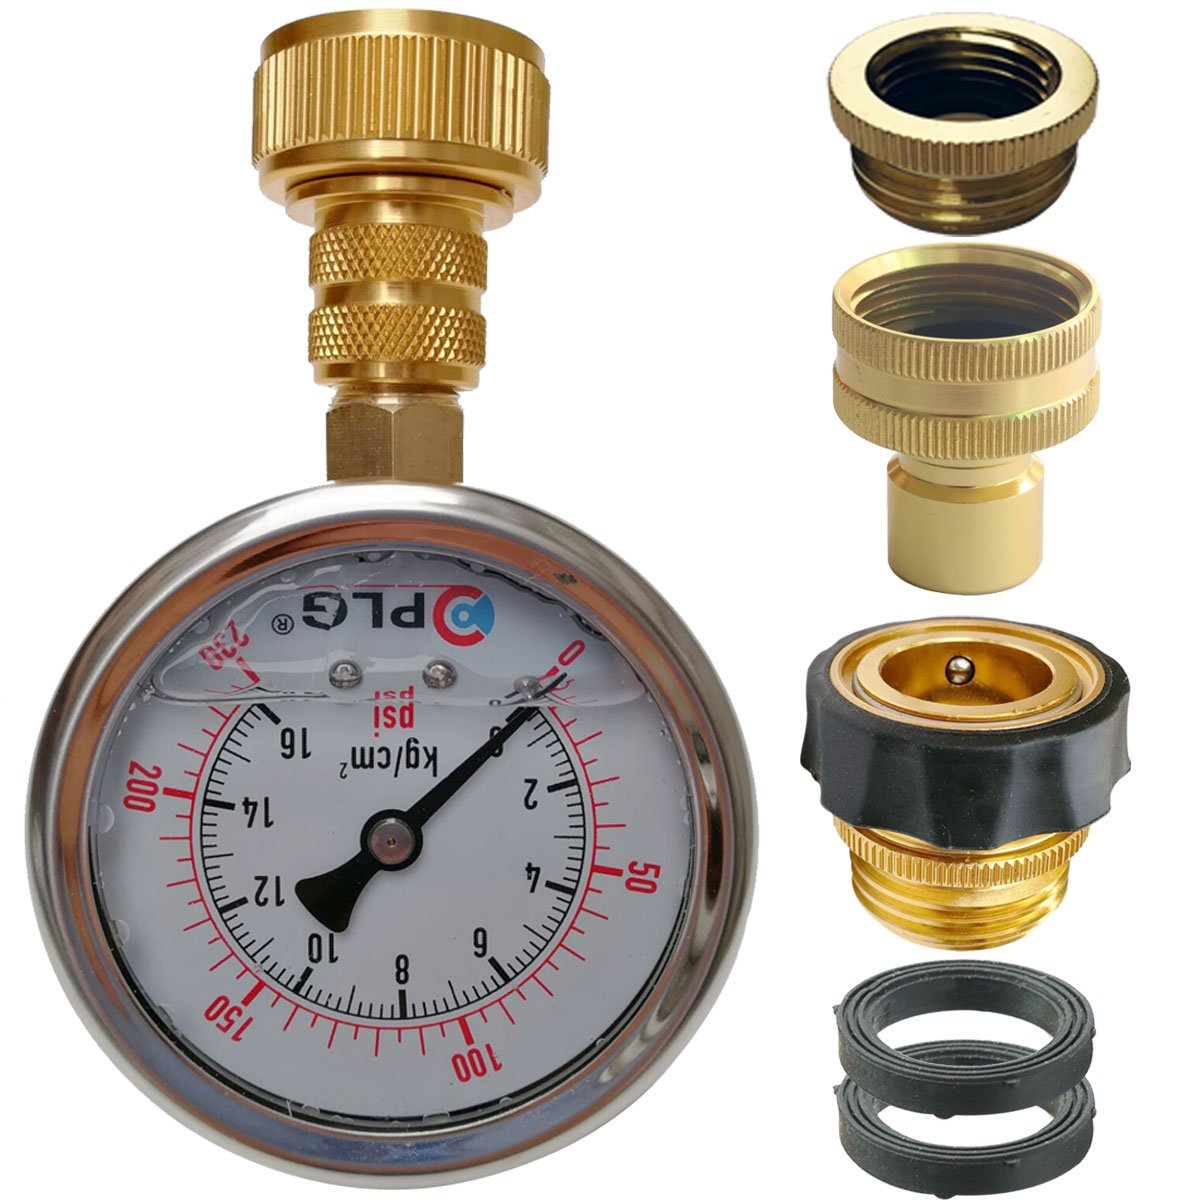 PLG Quick Connect/Disconnect Water Pressure Gauge Kit,2 in.Gauge w/Oil, 0 psi 230 psi,Push-Lock 3/4'' GHT Hose Connector,3/4'' to 1/2'' Spigot Adapters by PLG